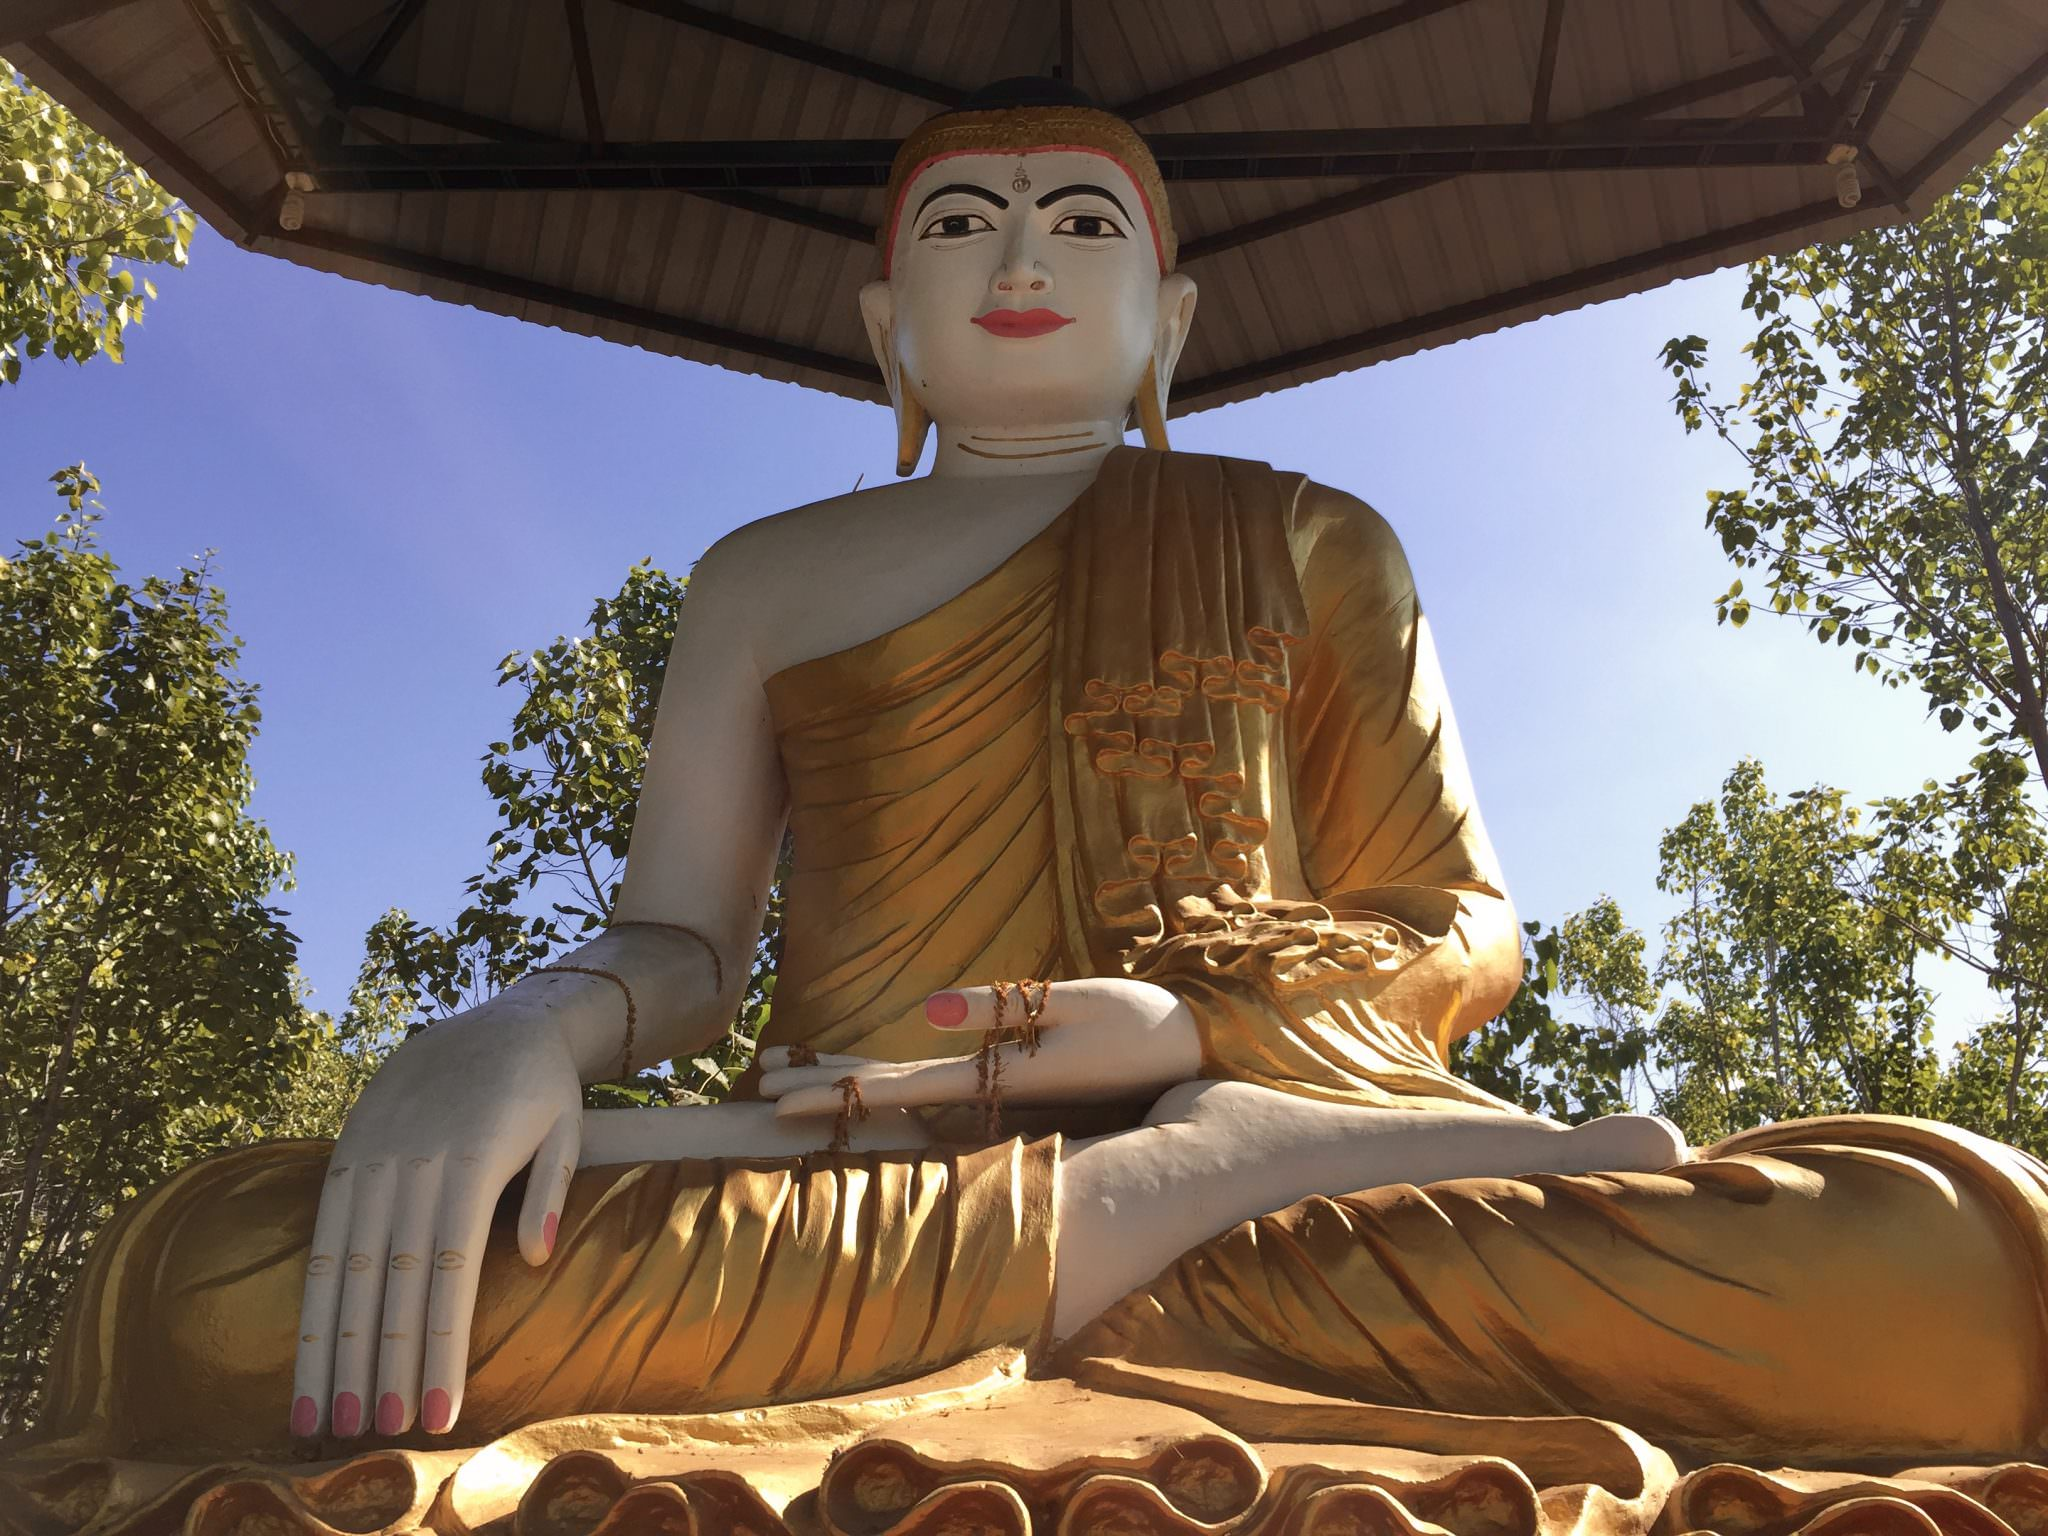 One central statue watches over the park. The mudra of this Buddha's hands symbolizes meditation (left) and not wavering from that practice by staying grounded under the bodhi tree until he achieves enlightenment (right). © 2015 Gail Jessen